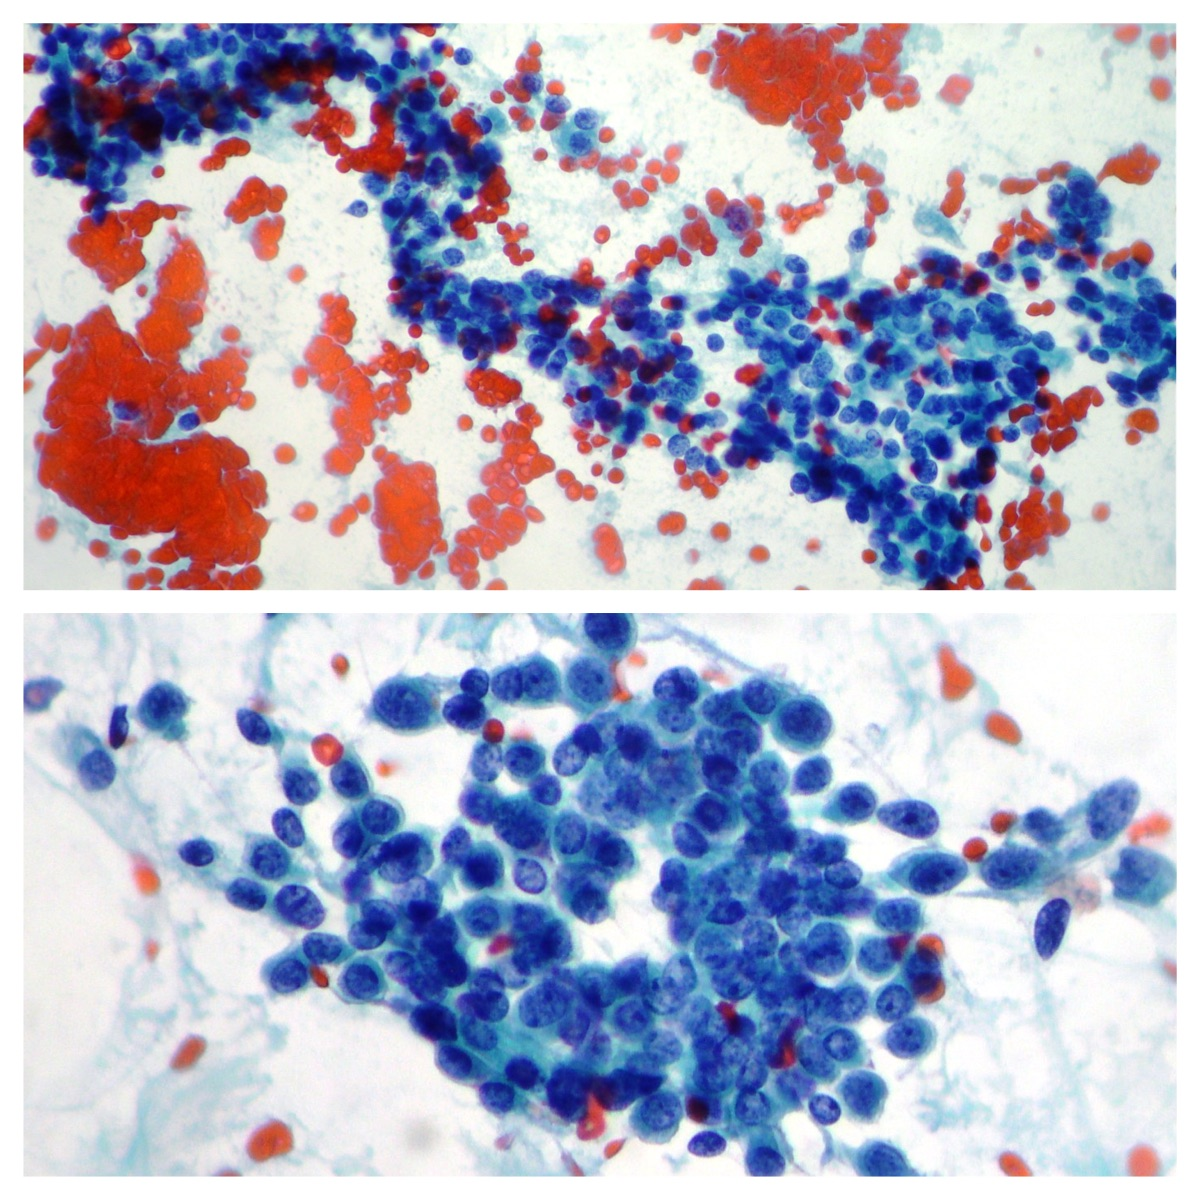 Liver And Pancreas Cancer Cytopathology Gastrointestinal Cytology